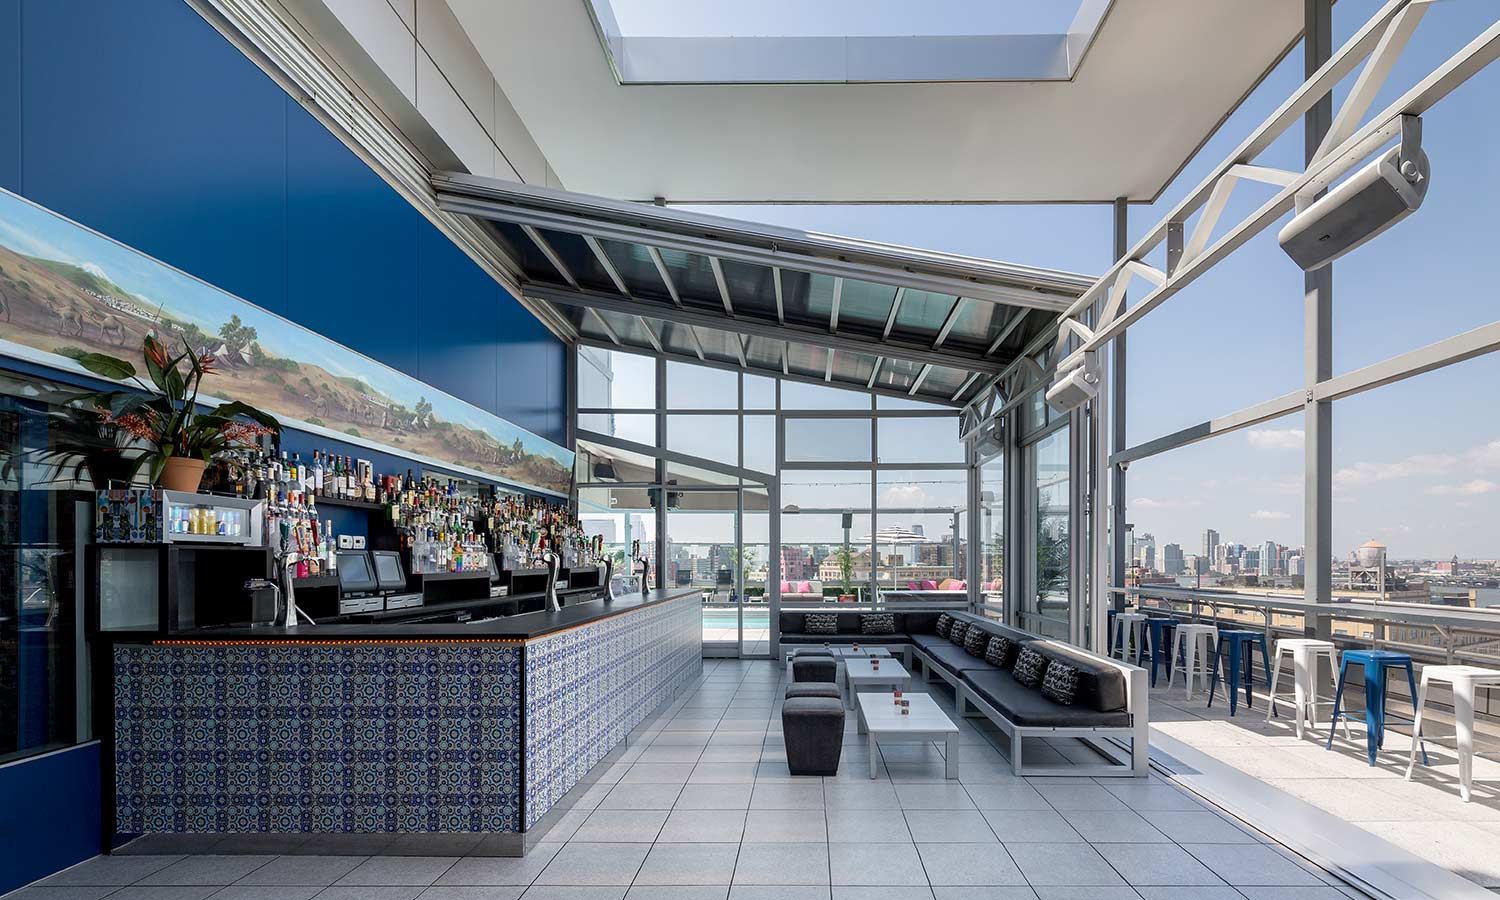 Photo #2 Event Spaces at Gansevoort Meatpacking